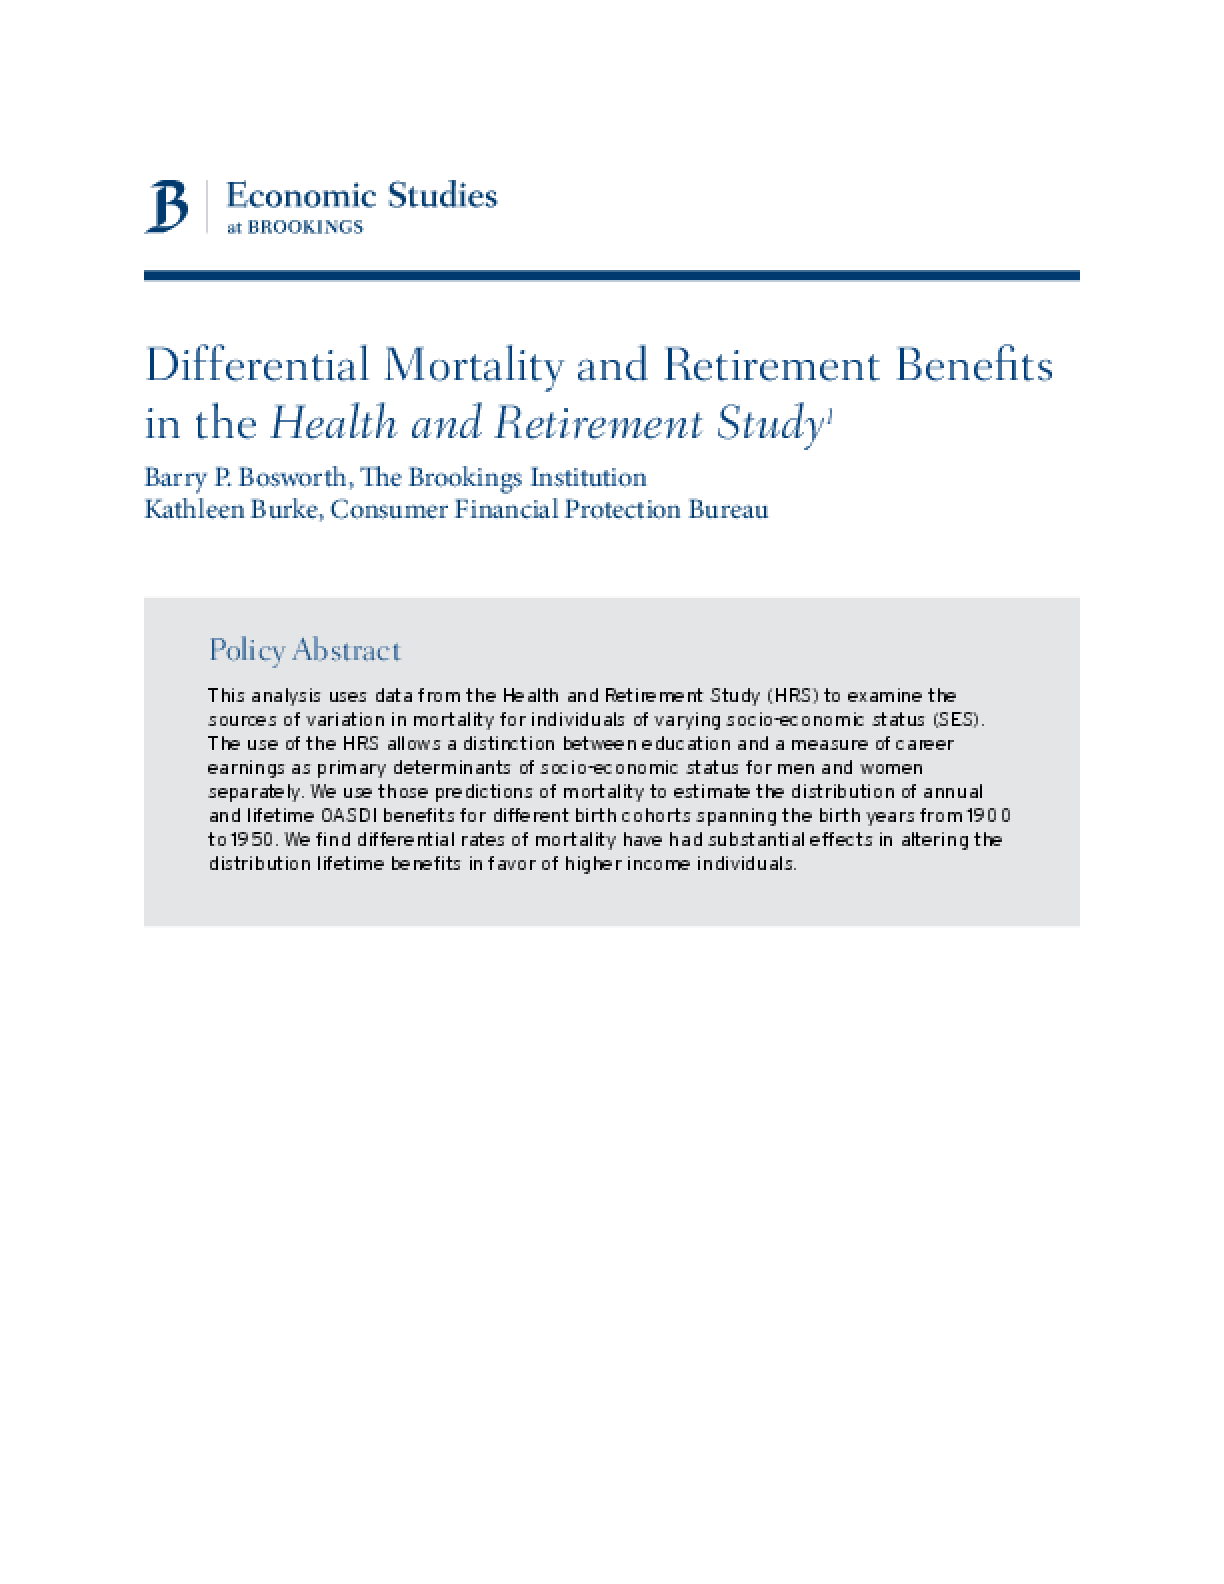 Differential Mortality and Retirement Benefits in the Health and Retirement Study